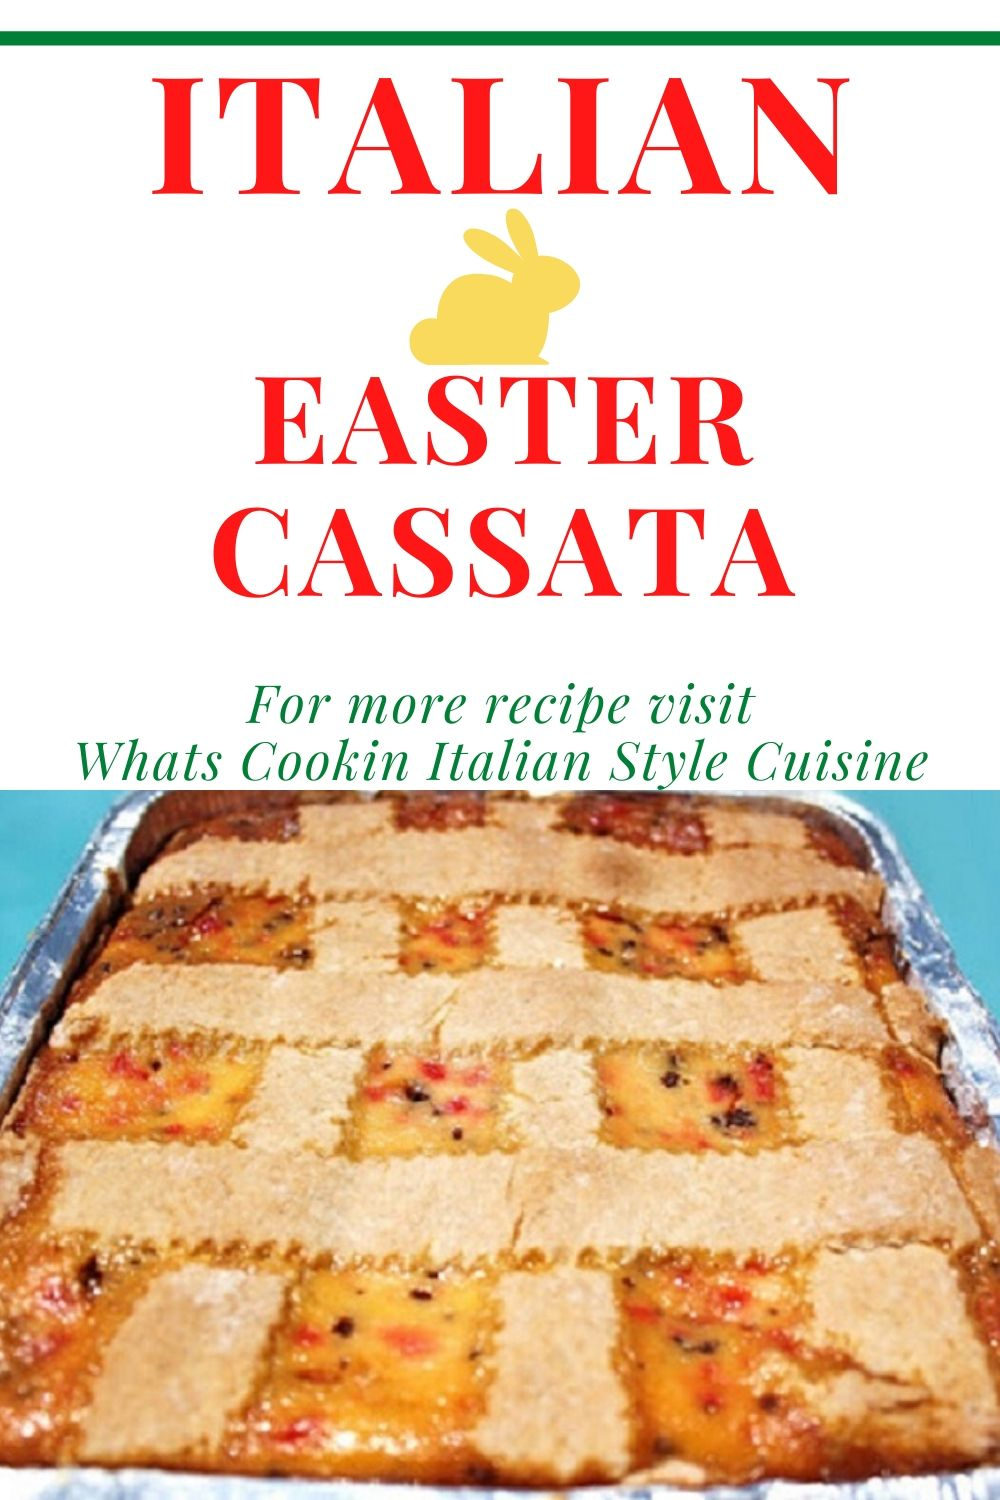 this is a ricotta filled cake popular at Easter in Italy and most Italian American homes called cassata